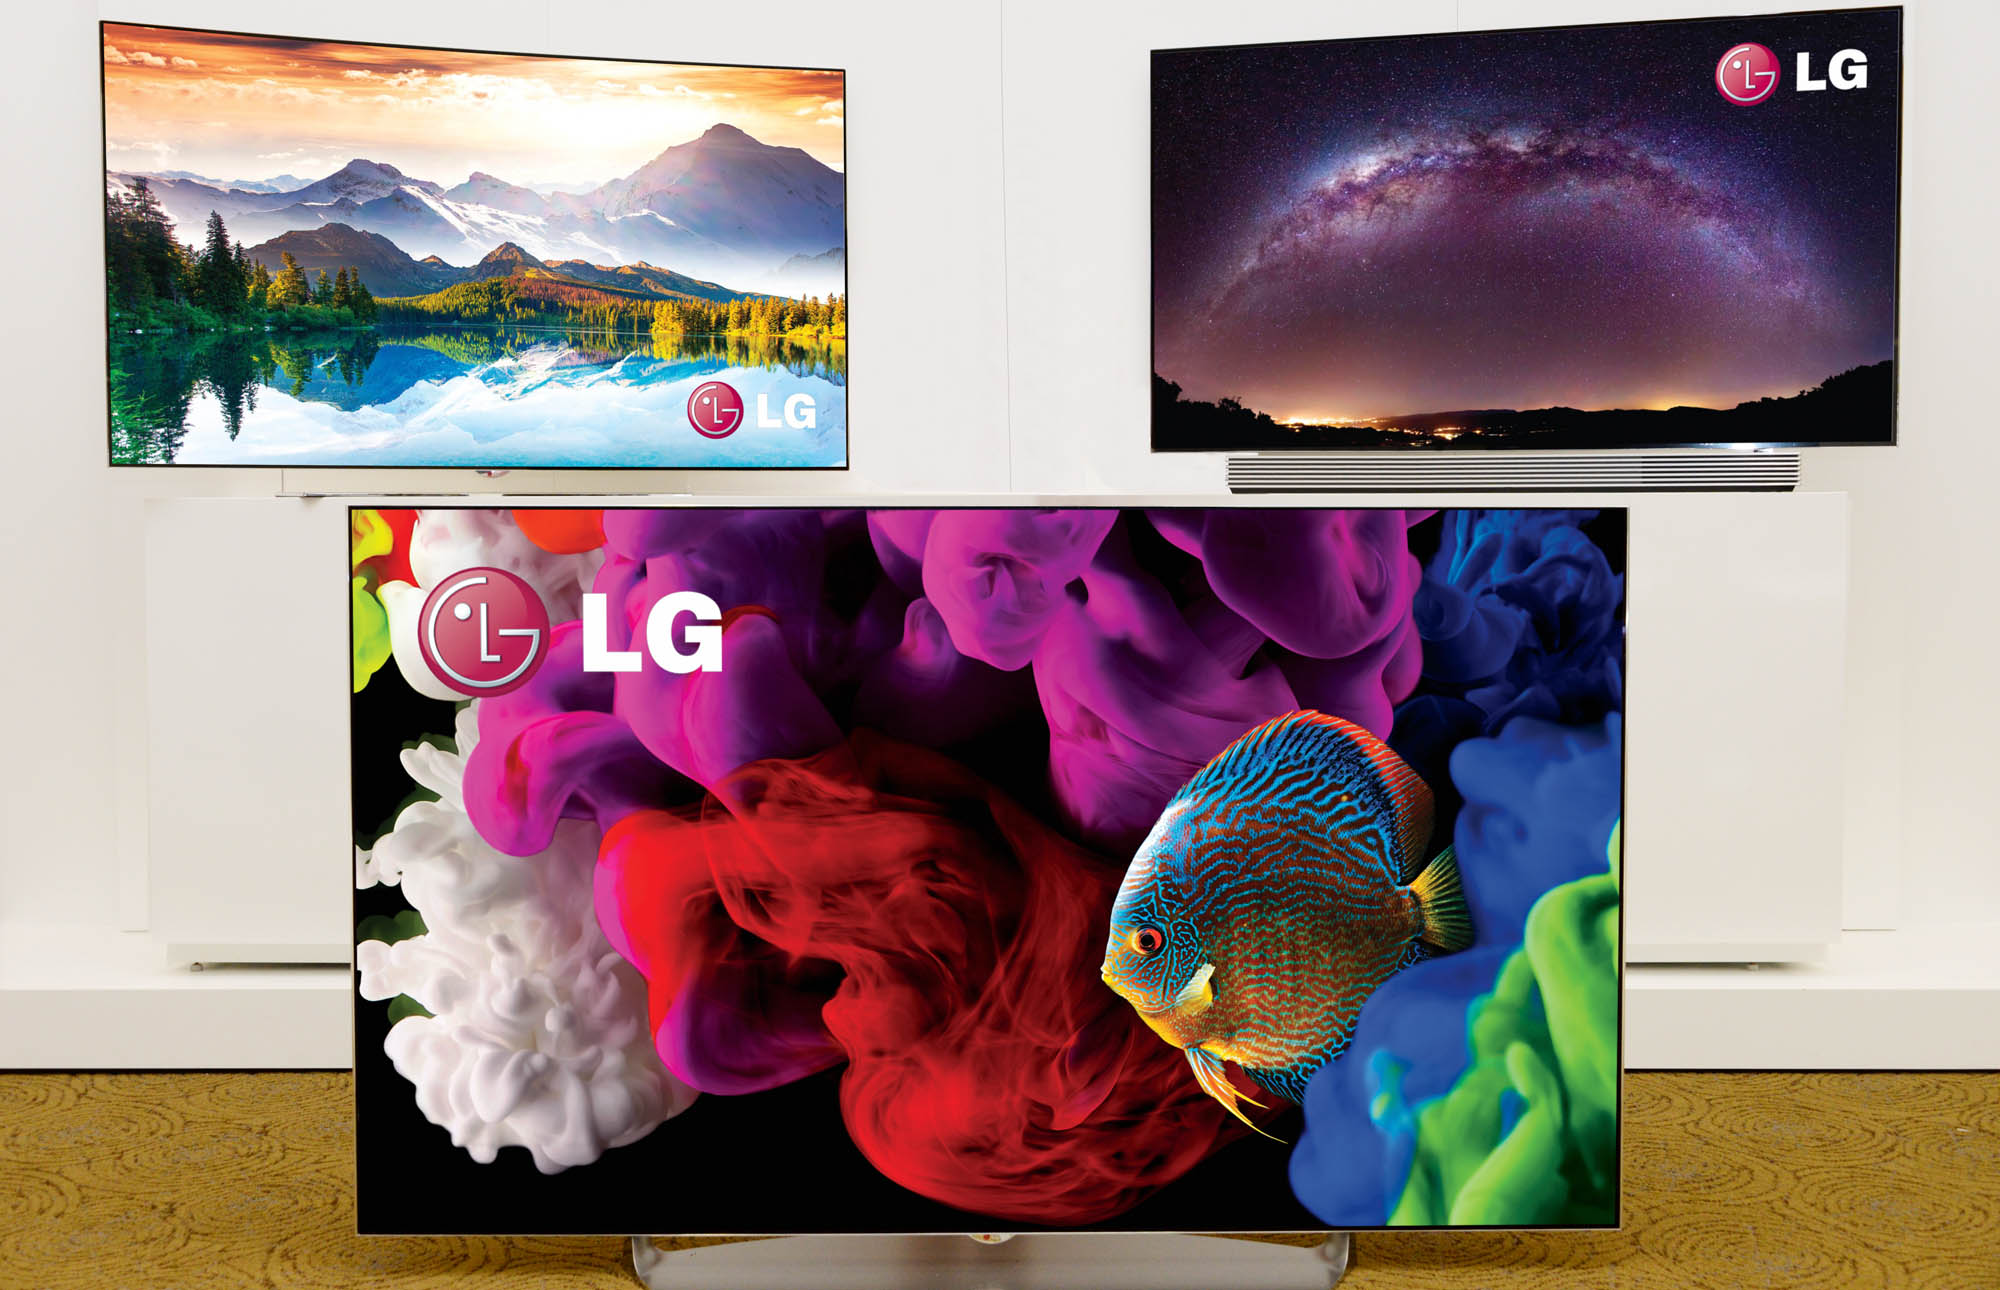 LG 4K OLED TVs press picture courtesy of LG America